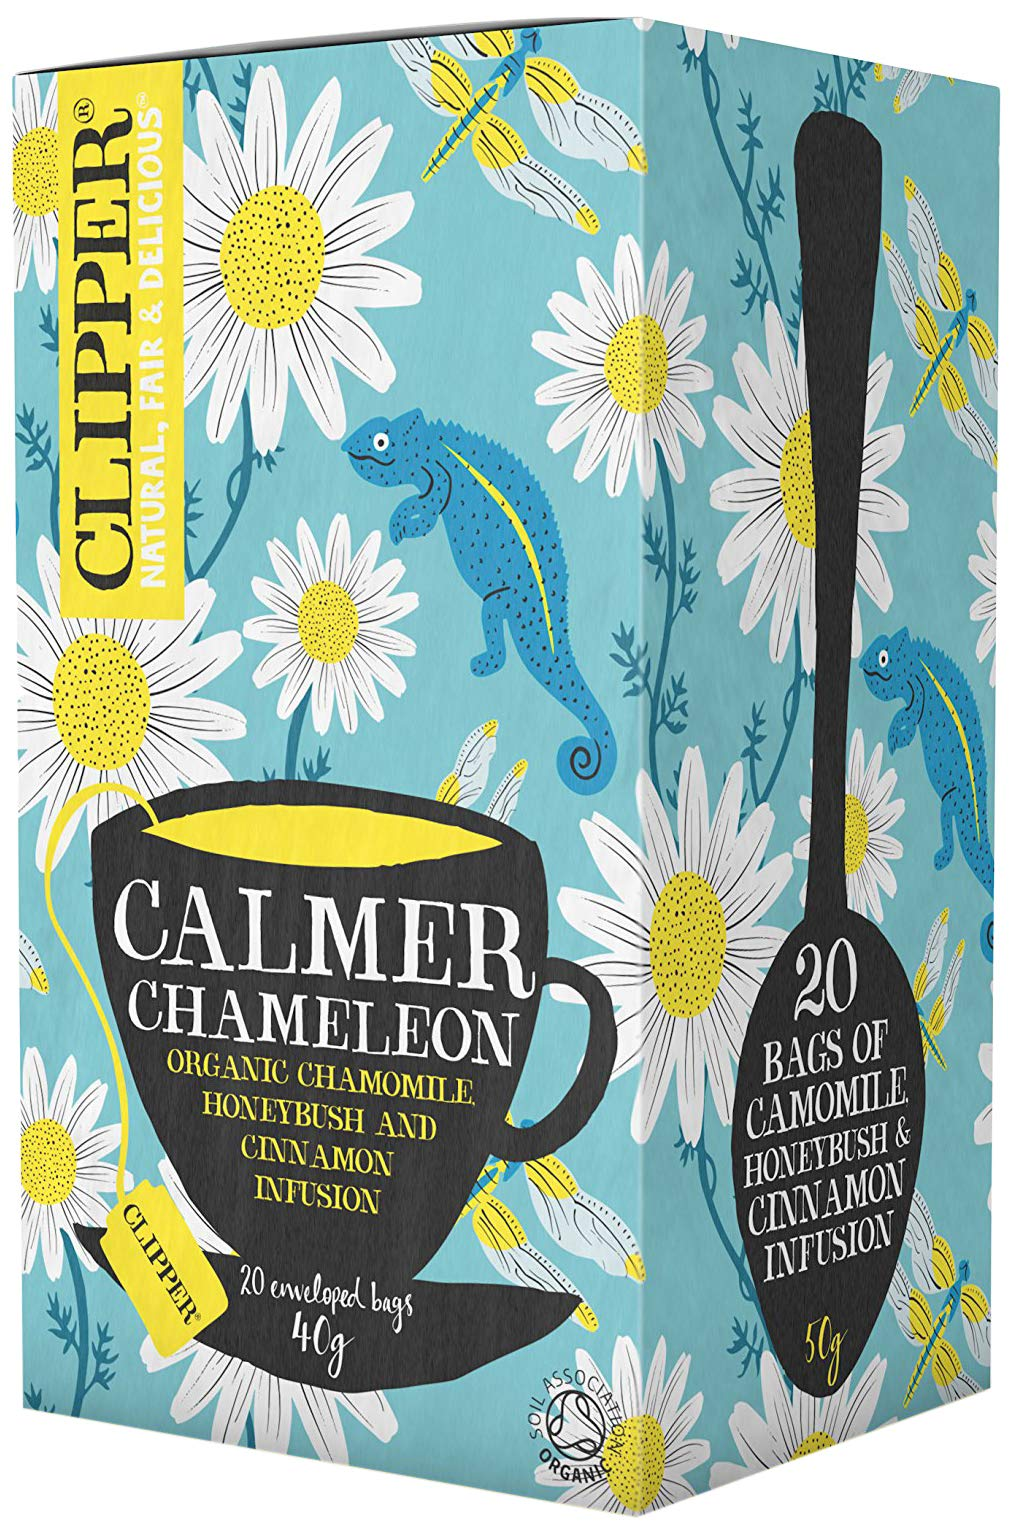 Clipper calmer chamelion tea bundle (soil association) (rooibos tea) (6 packs of 20 bags) (120 bags) (a fruity, spicy tea with aromas of camomile, cinnamon) (brews in 3-5 minutes)